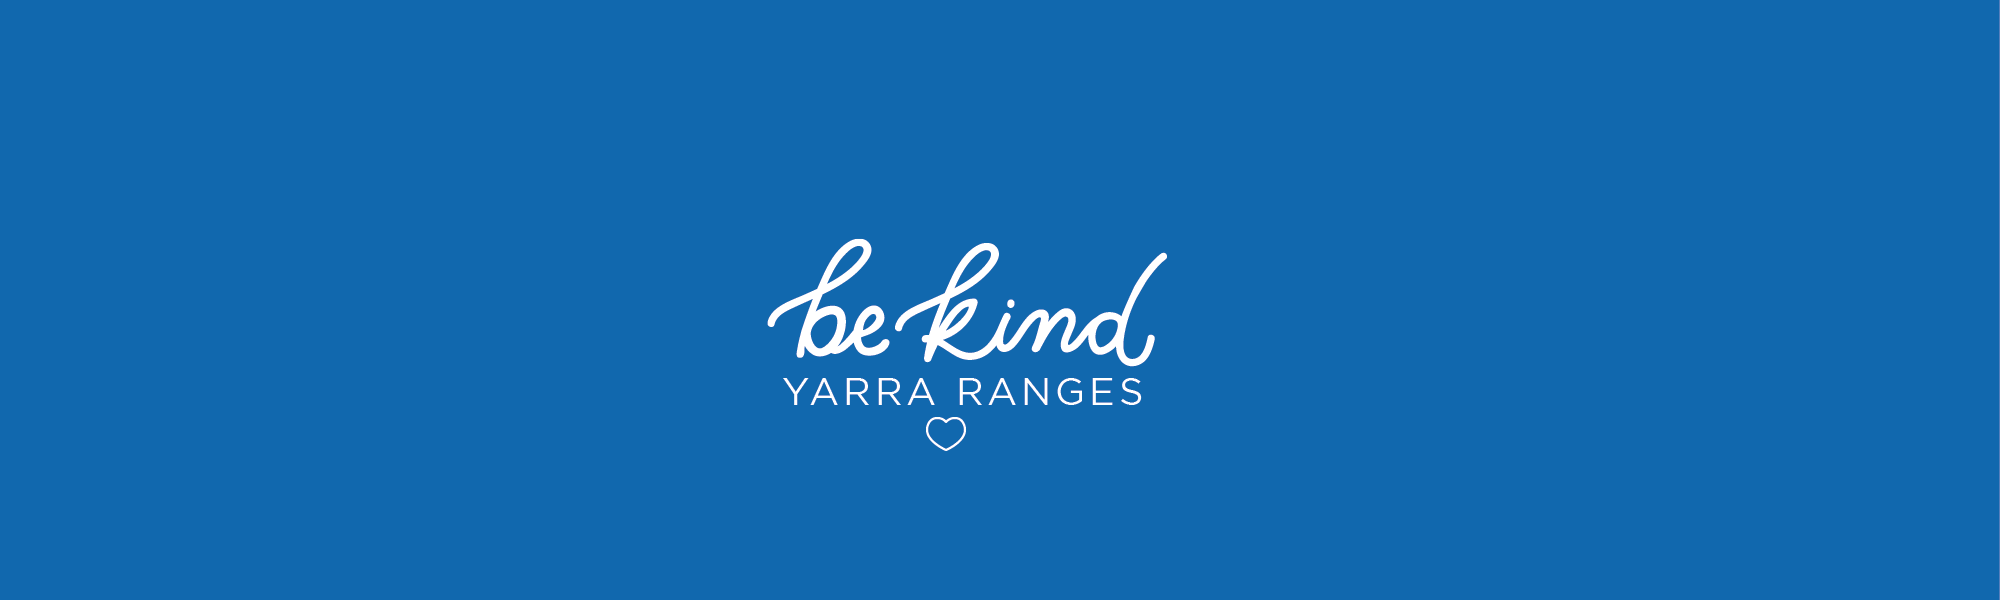 Be Kind Yarra Ranges